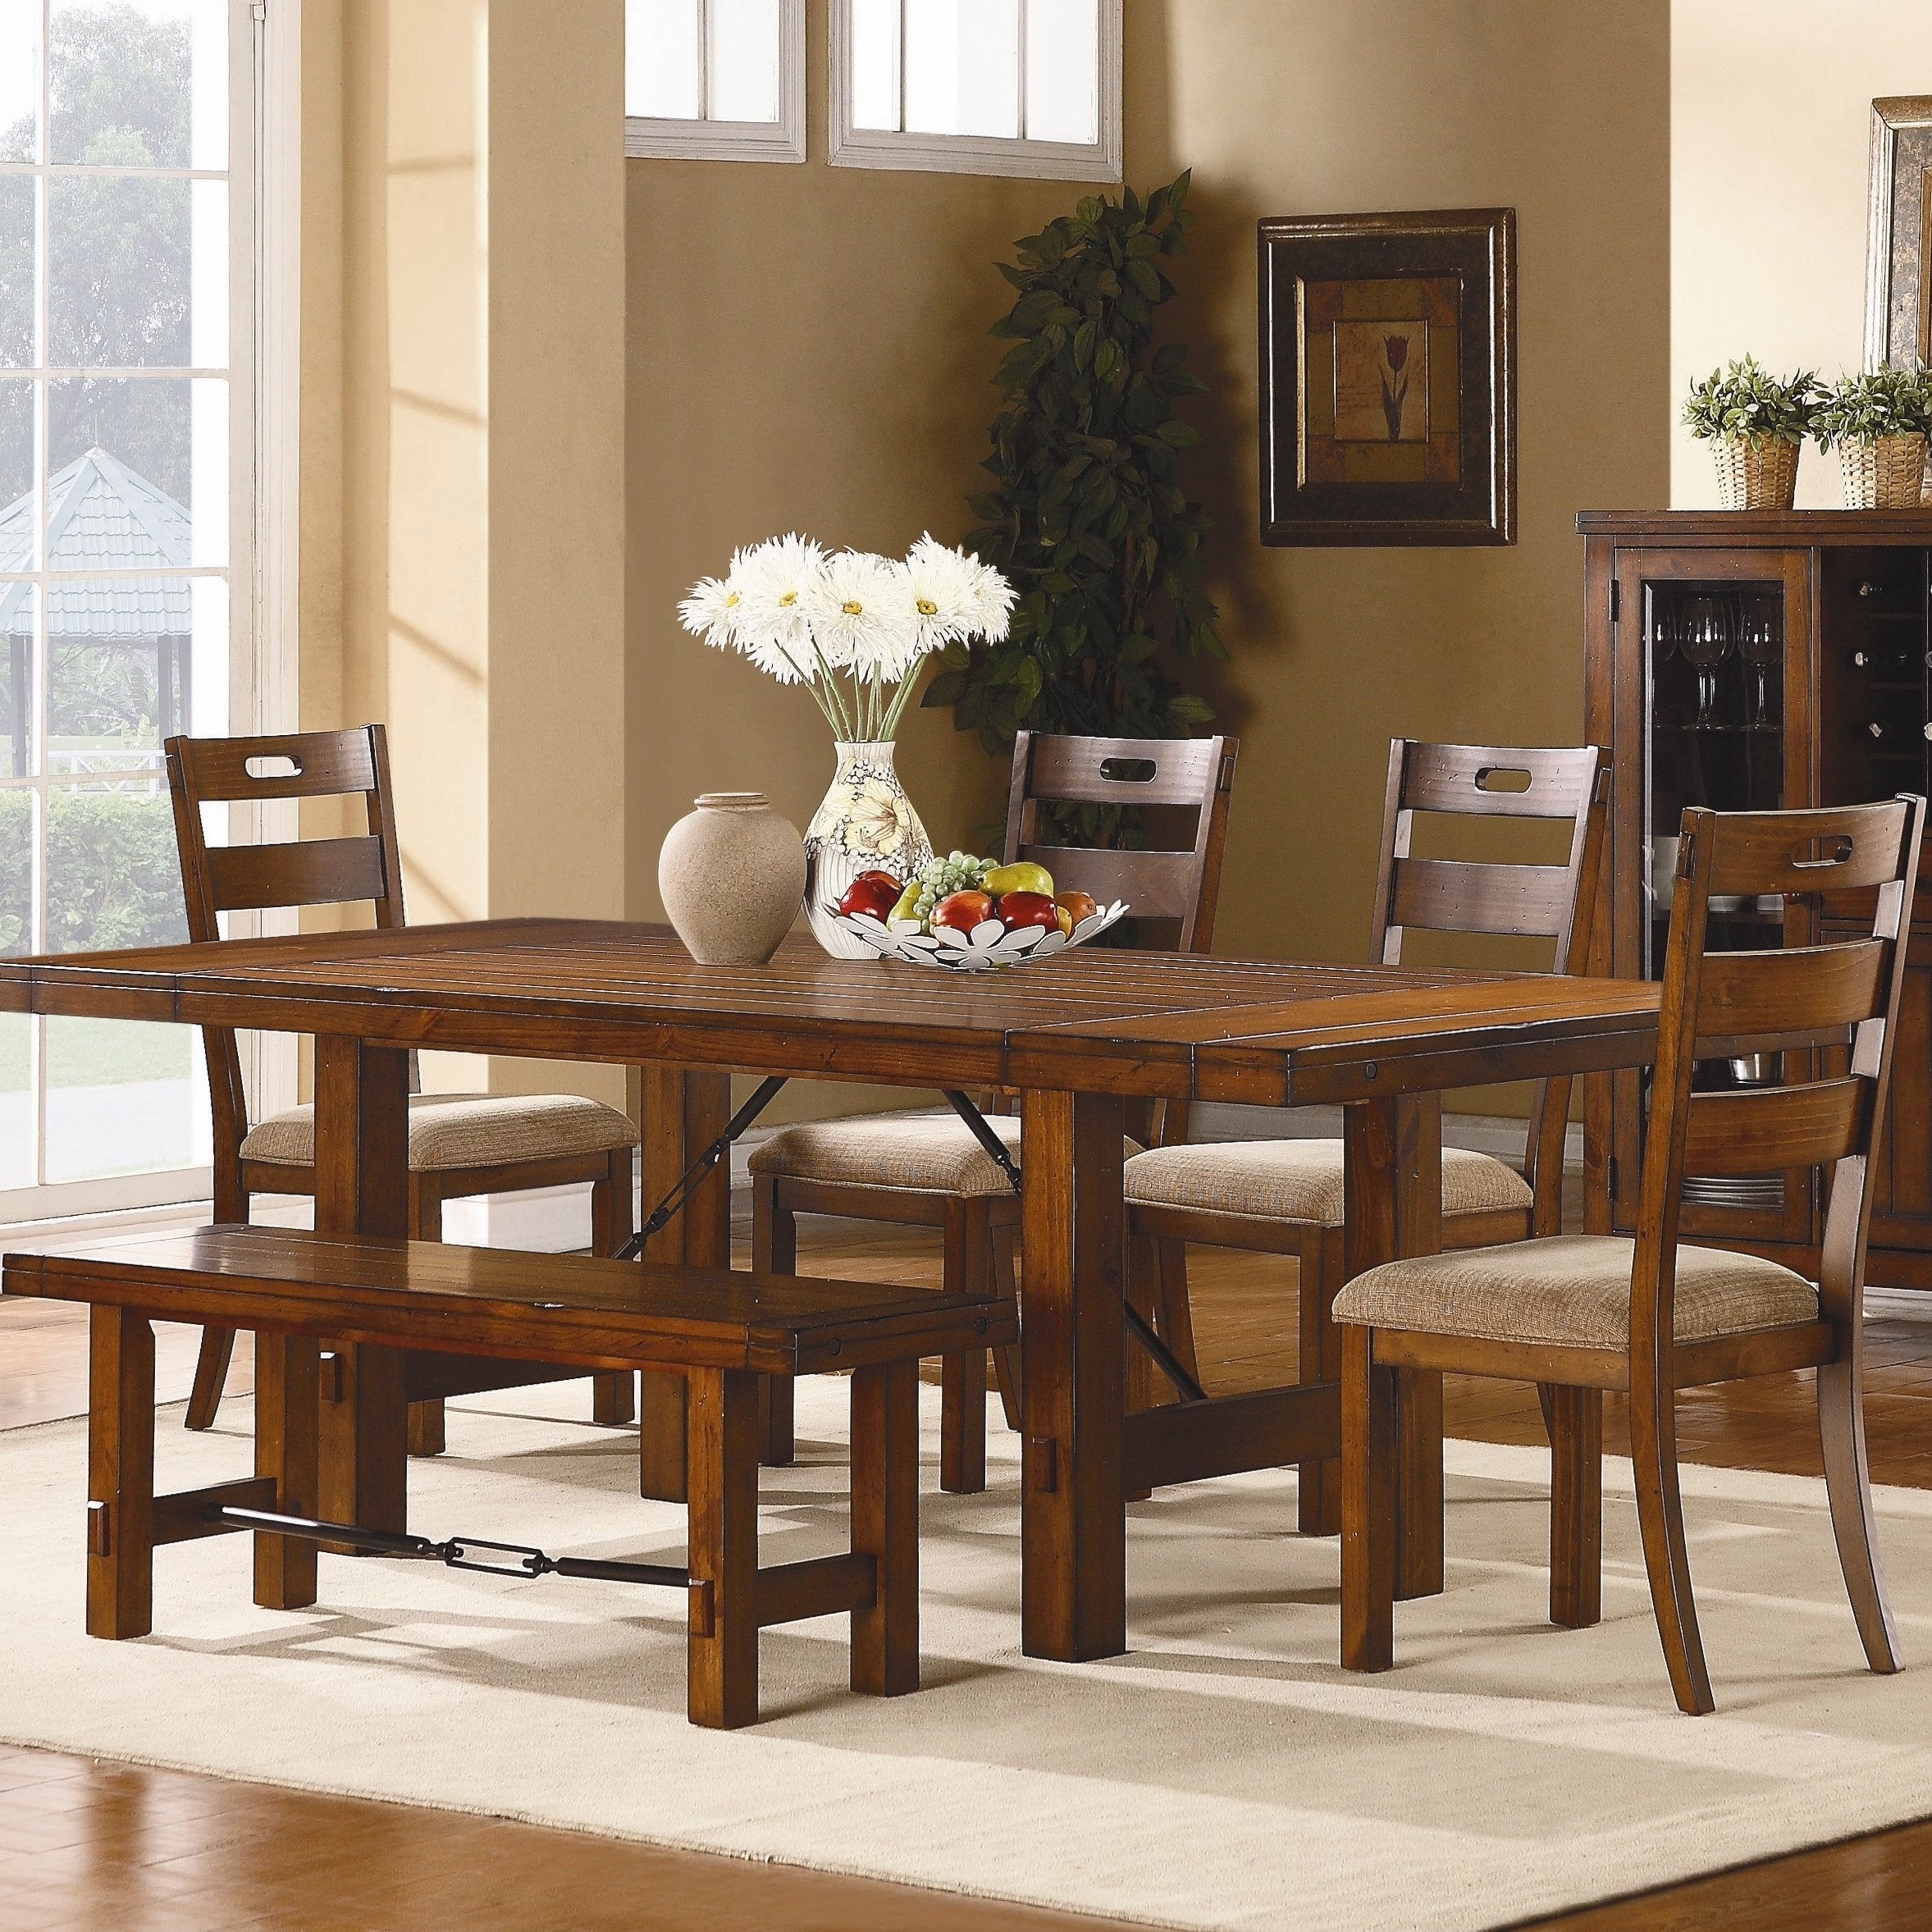 Loon Peak South Bross 6 Piece Dining Set & Reviews | Wayfair inside Marbled Axton Sideboards (Image 13 of 26)